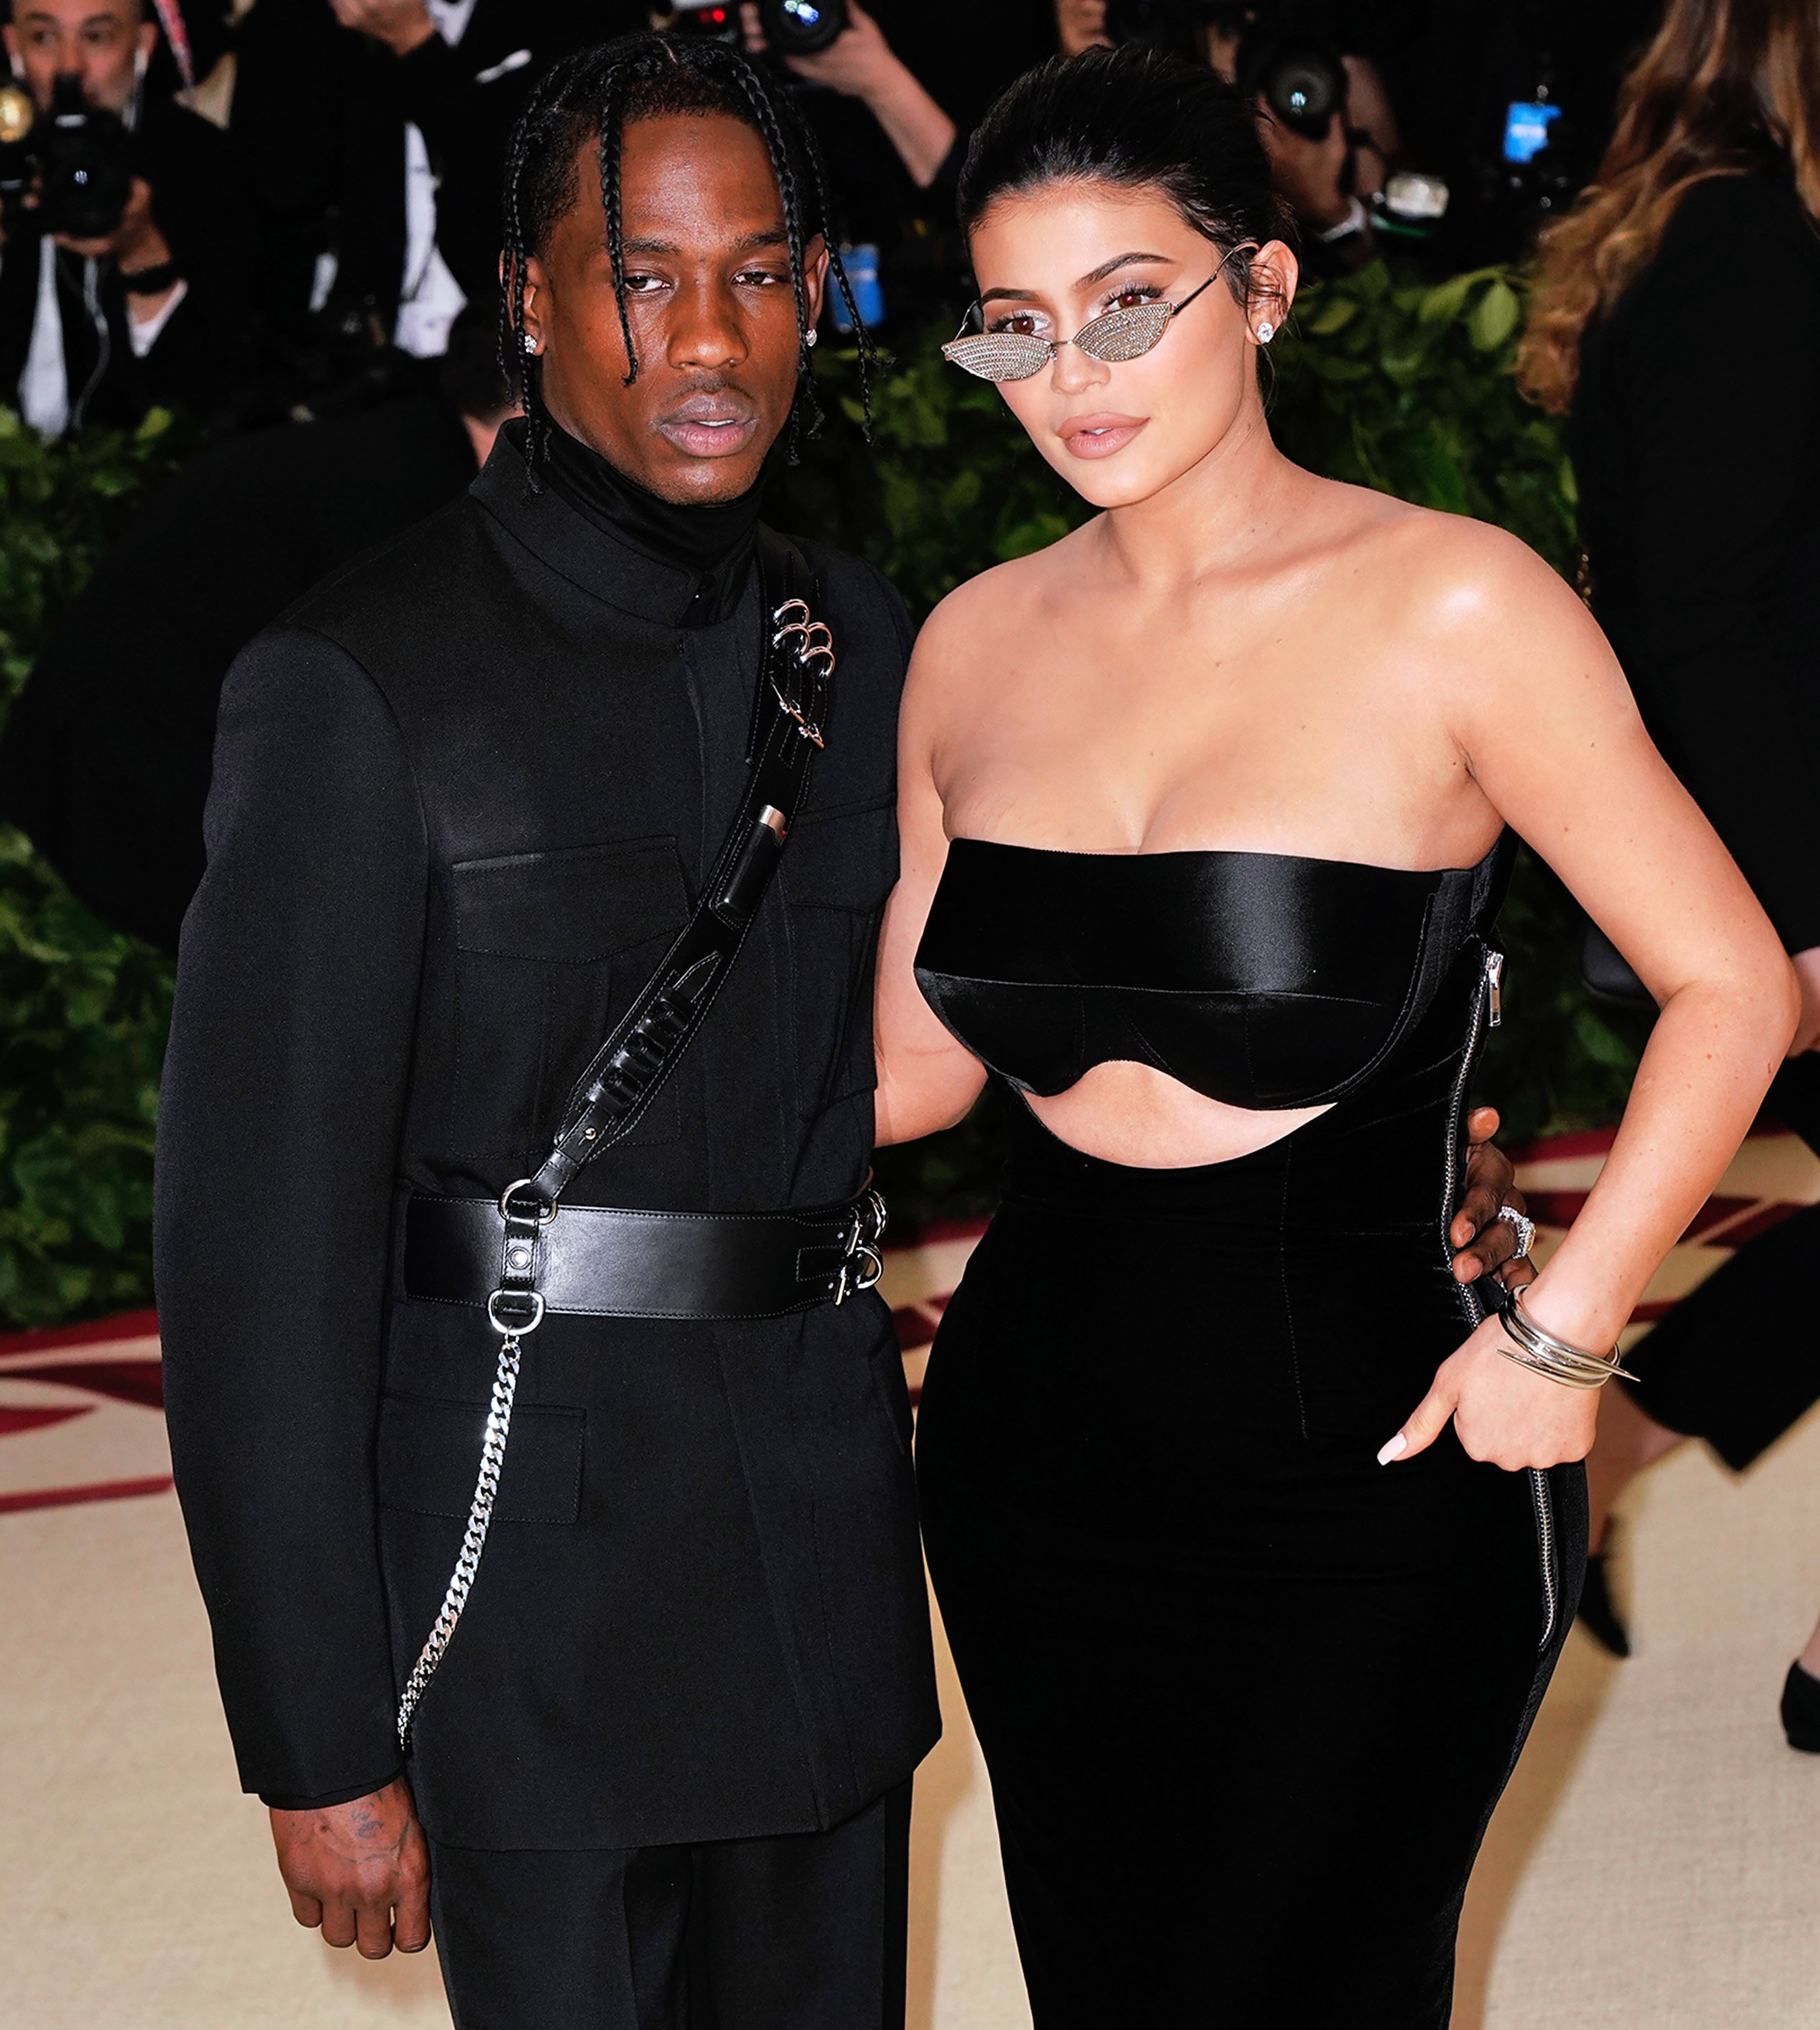 Kylie Jenner Slams Fake Photo of Travis Scott with Another Woman: 'My Relationship Is Strong'